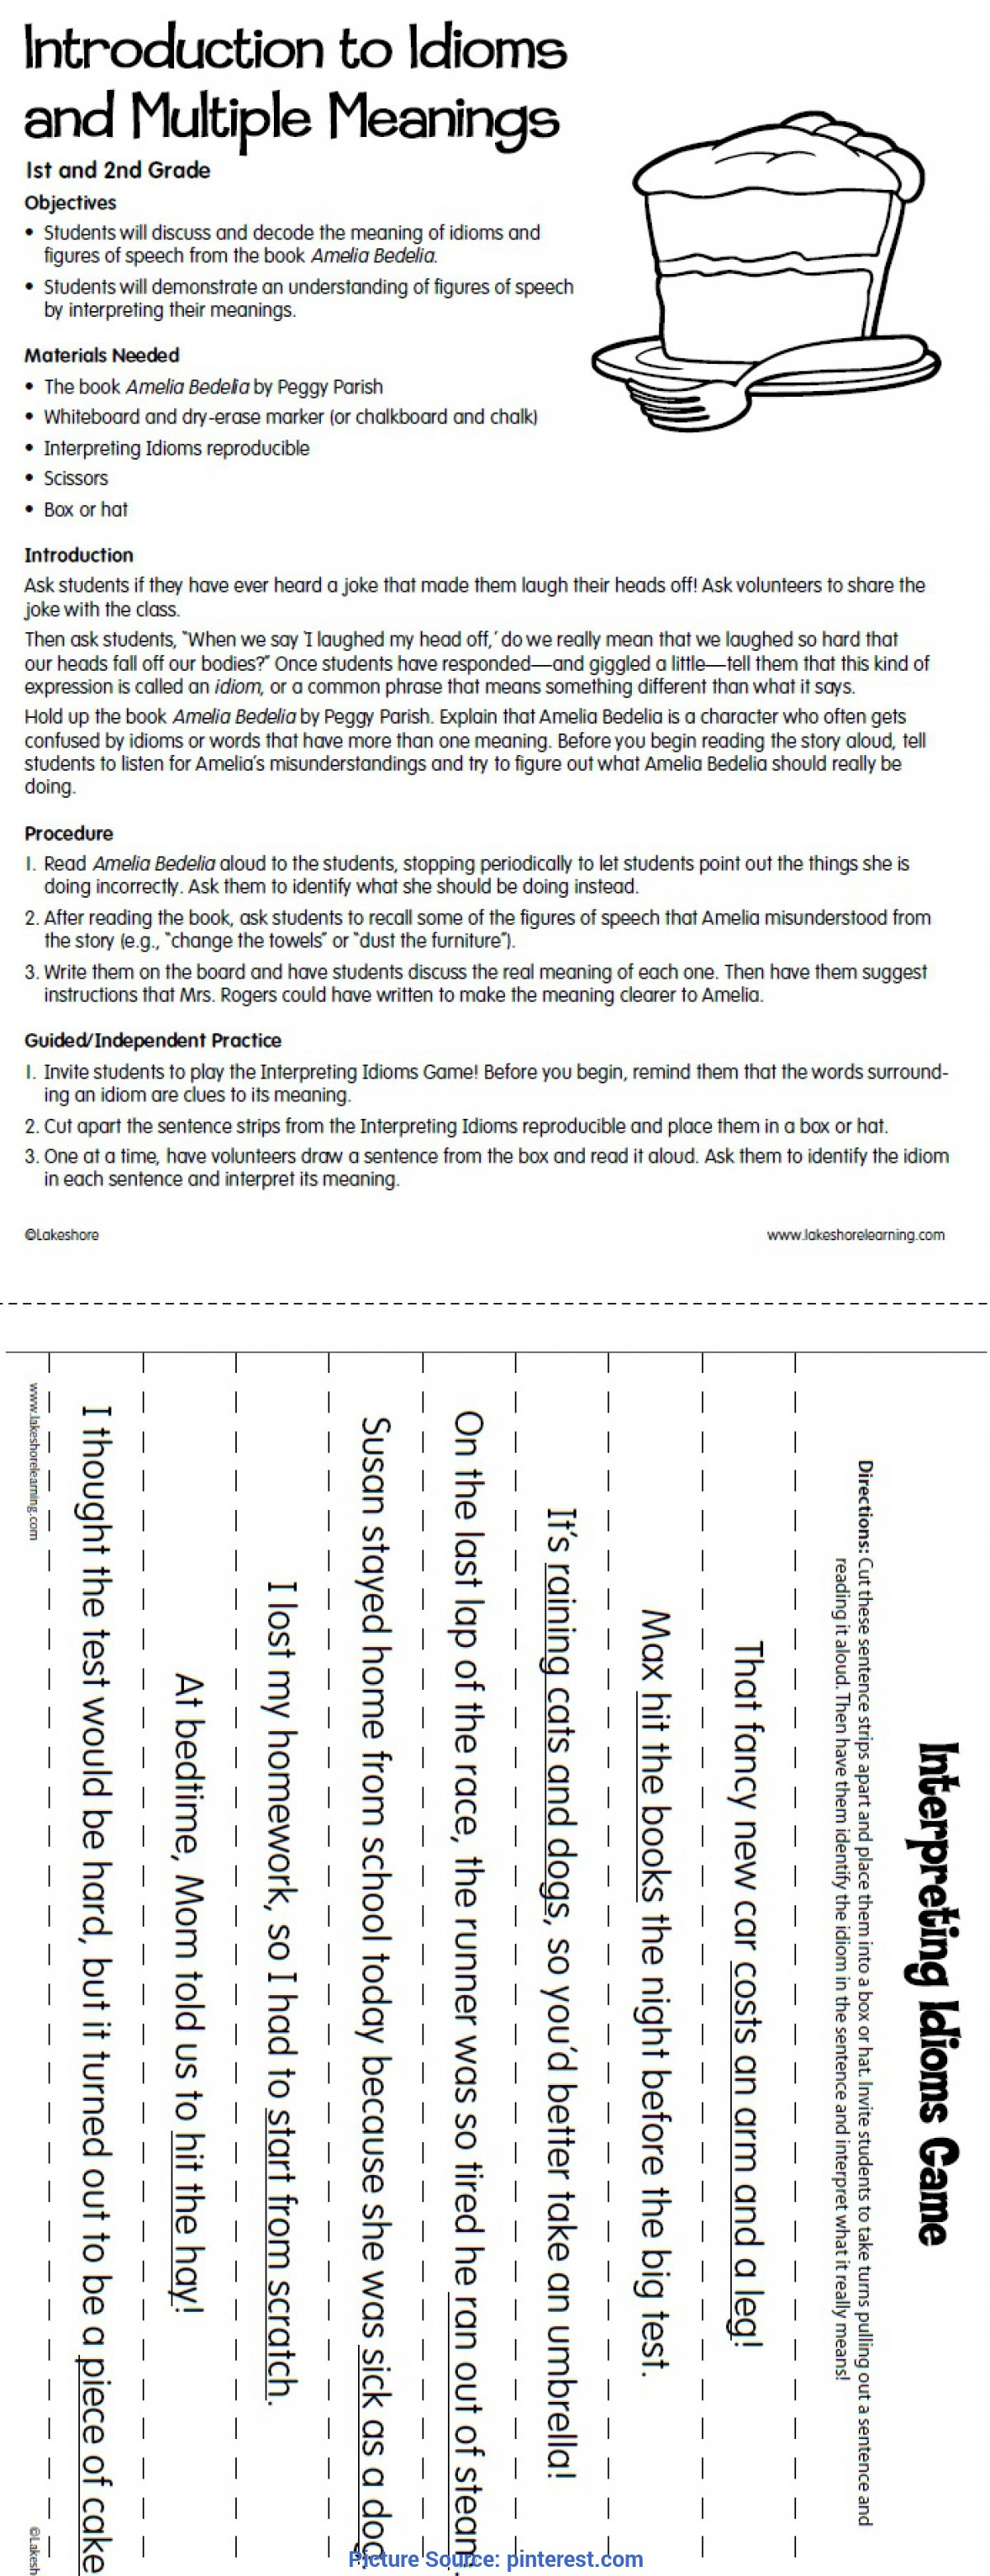 Best English Lesson Plan 2Nd Grade Lakeshore Dream Classroom Introduction To Idioms Lesson Plan Fro